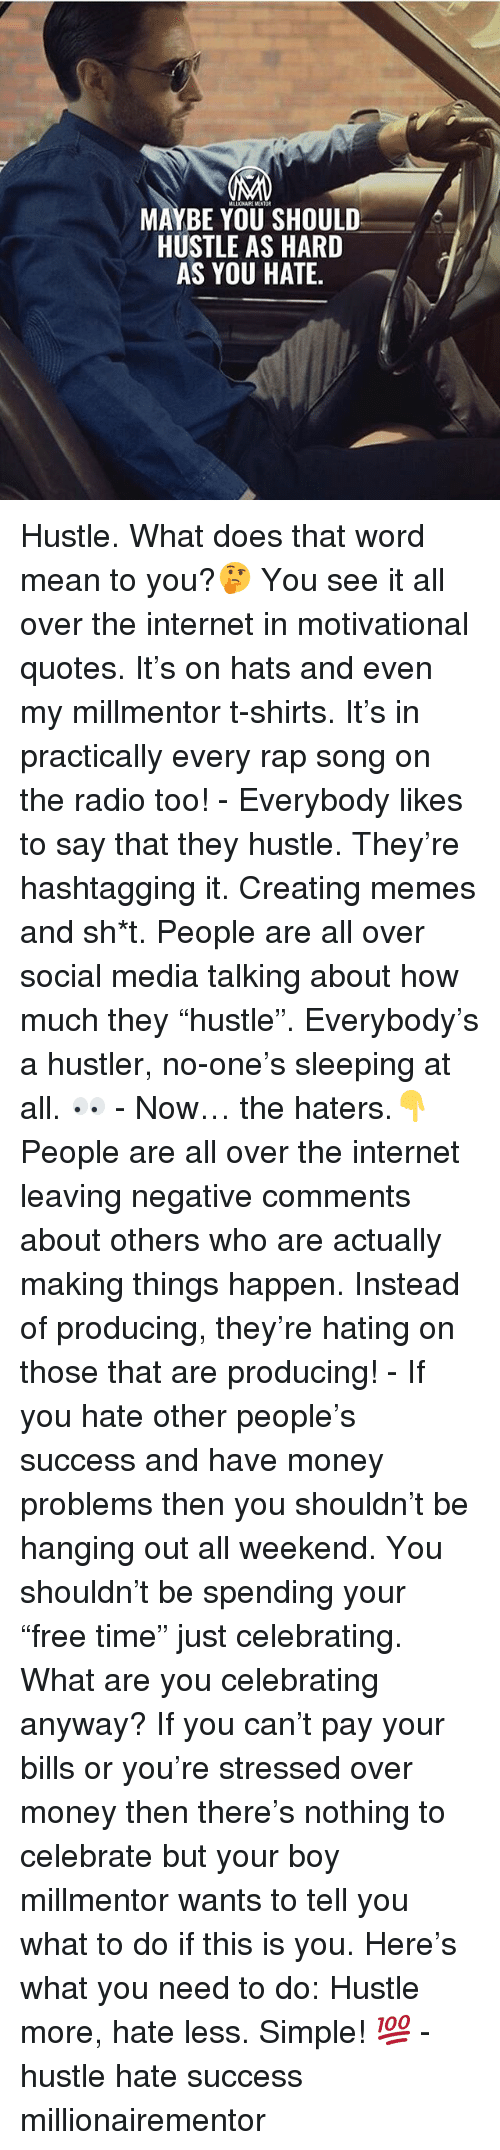 """motivational quotes: MAYBE YOU SHOULD  HUSTLE AS HARD  AS YOU HATE Hustle. What does that word mean to you?🤔 You see it all over the internet in motivational quotes. It's on hats and even my millmentor t-shirts. It's in practically every rap song on the radio too! - Everybody likes to say that they hustle. They're hashtagging it. Creating memes and sh*t. People are all over social media talking about how much they """"hustle"""". Everybody's a hustler, no-one's sleeping at all. 👀 - Now… the haters.👇 People are all over the internet leaving negative comments about others who are actually making things happen. Instead of producing, they're hating on those that are producing! - If you hate other people's success and have money problems then you shouldn't be hanging out all weekend. You shouldn't be spending your """"free time"""" just celebrating. What are you celebrating anyway? If you can't pay your bills or you're stressed over money then there's nothing to celebrate but your boy millmentor wants to tell you what to do if this is you. Here's what you need to do: Hustle more, hate less. Simple! 💯 - hustle hate success millionairementor"""